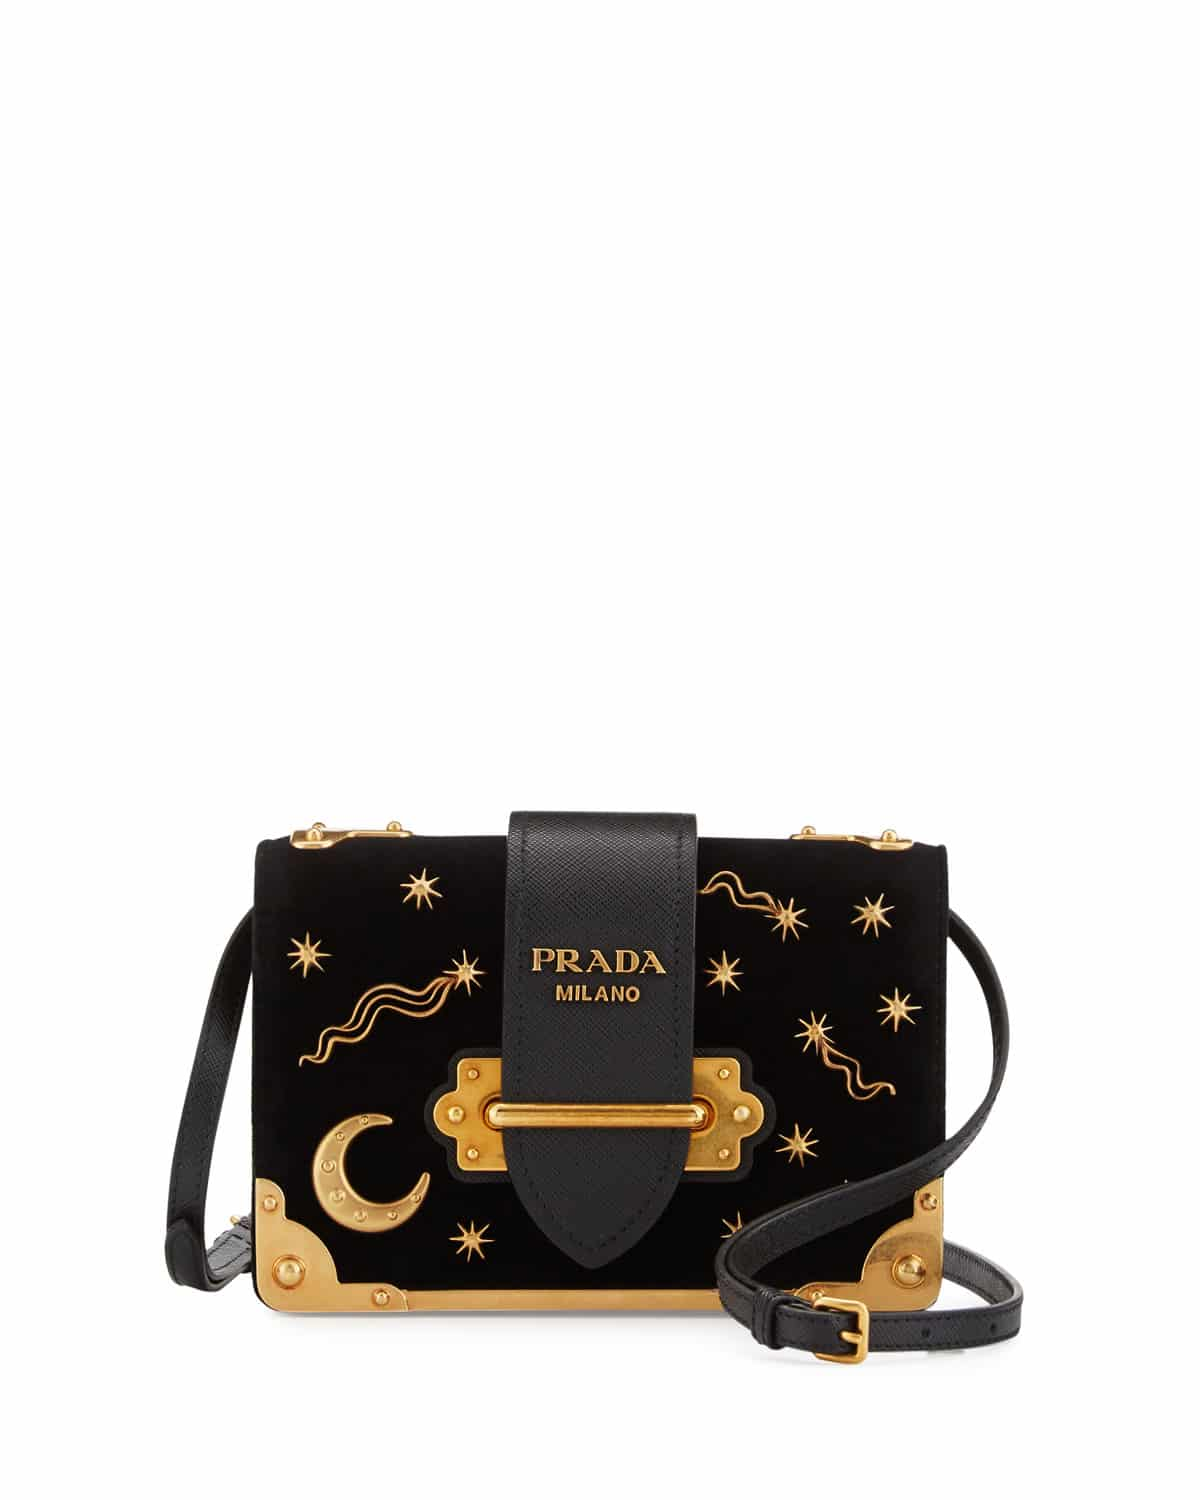 c5bf8f813145 Prada Cahier Astrology Bag Price | Stanford Center for Opportunity ...